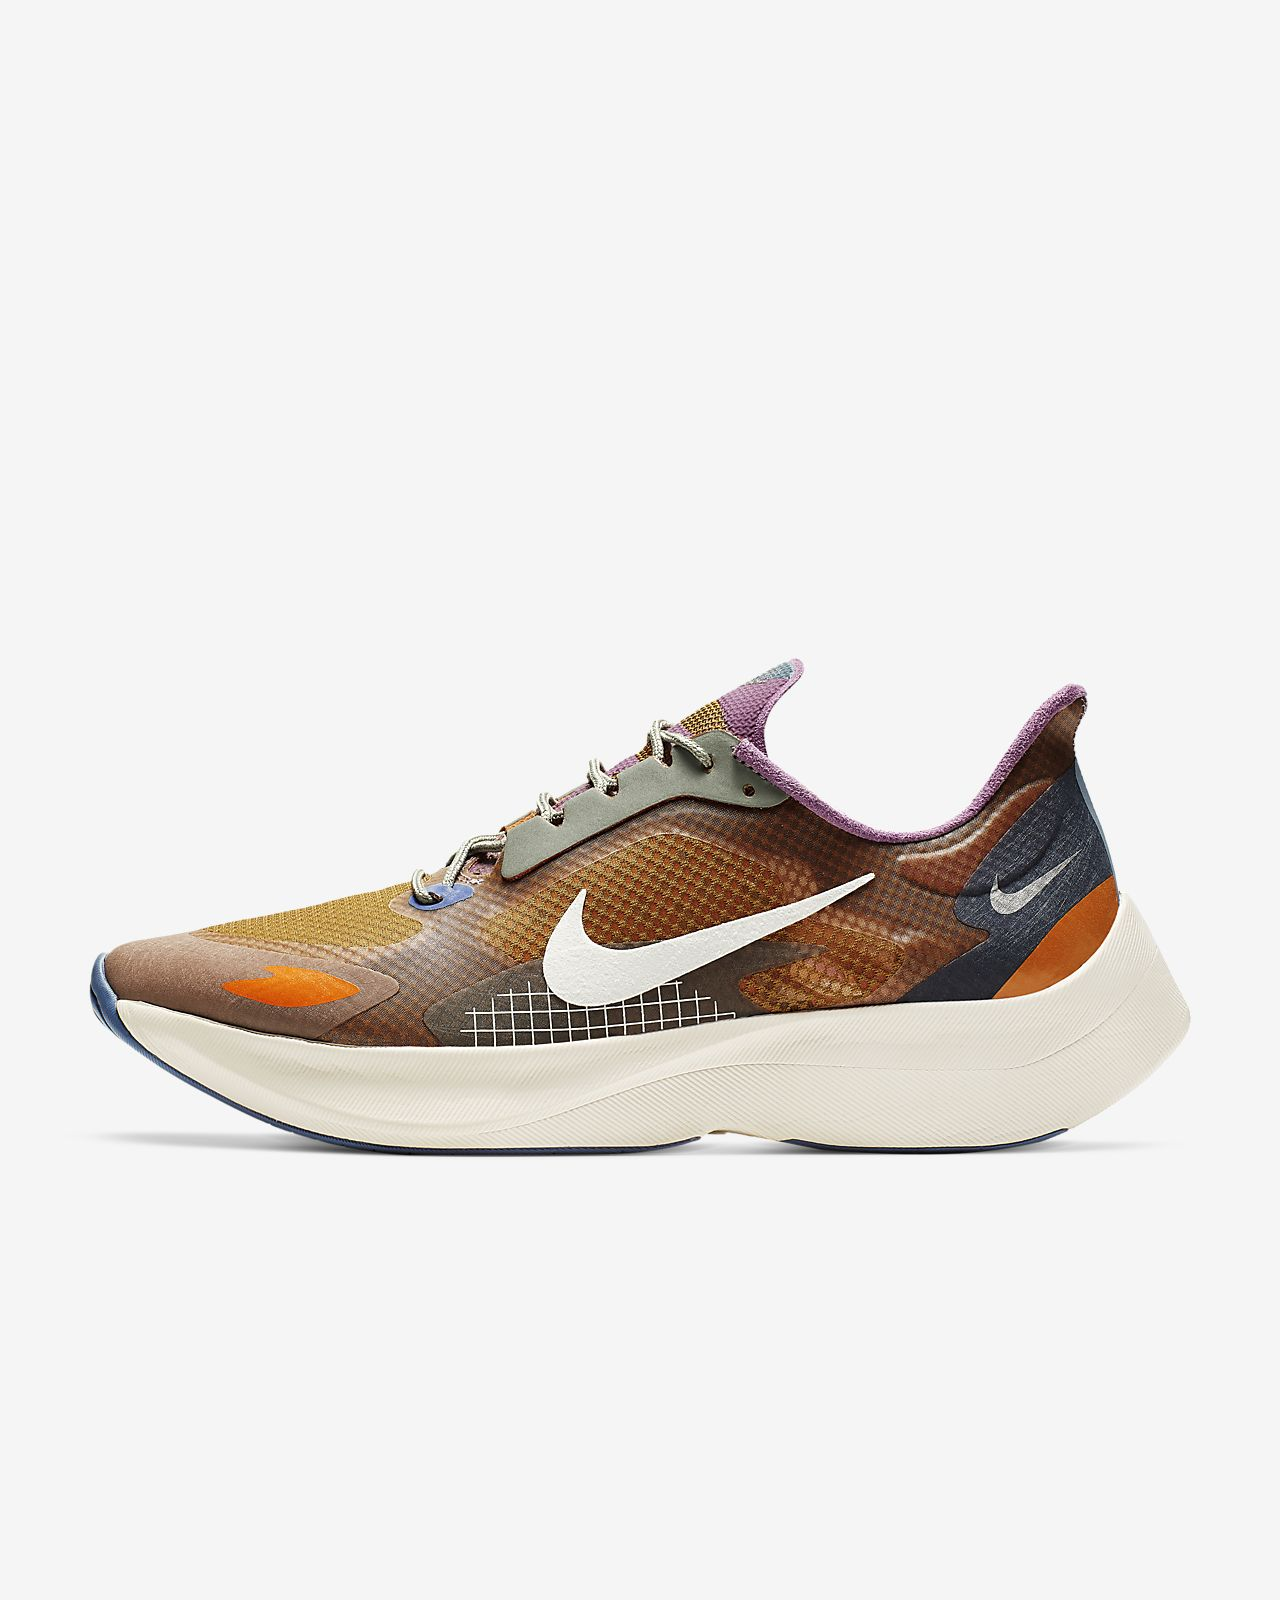 Nike Vapor Street PEG Men's Shoe